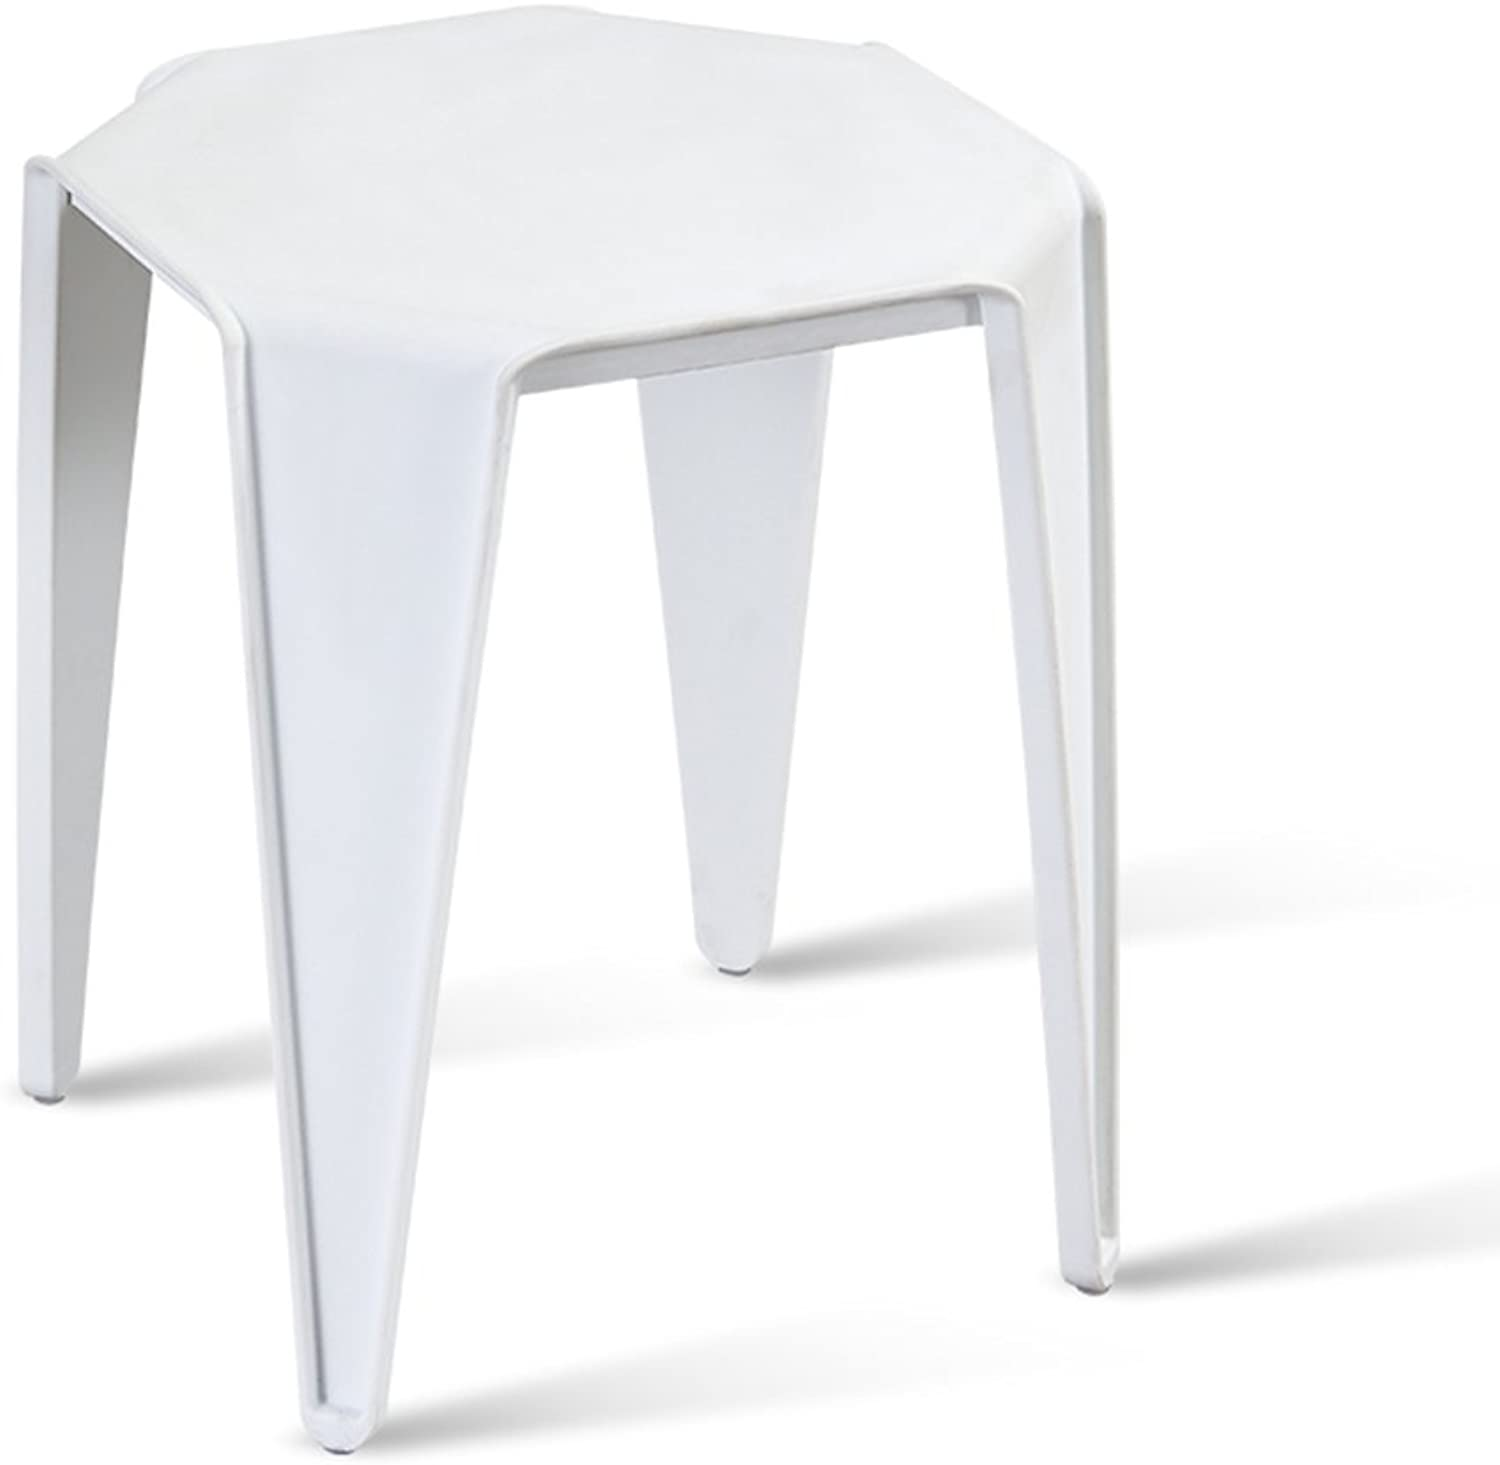 Modern Minimalist Stool, Multi-color Dining Stool Adult Creative Stool Plastic Stool Restaurant Small Bench (color   C)